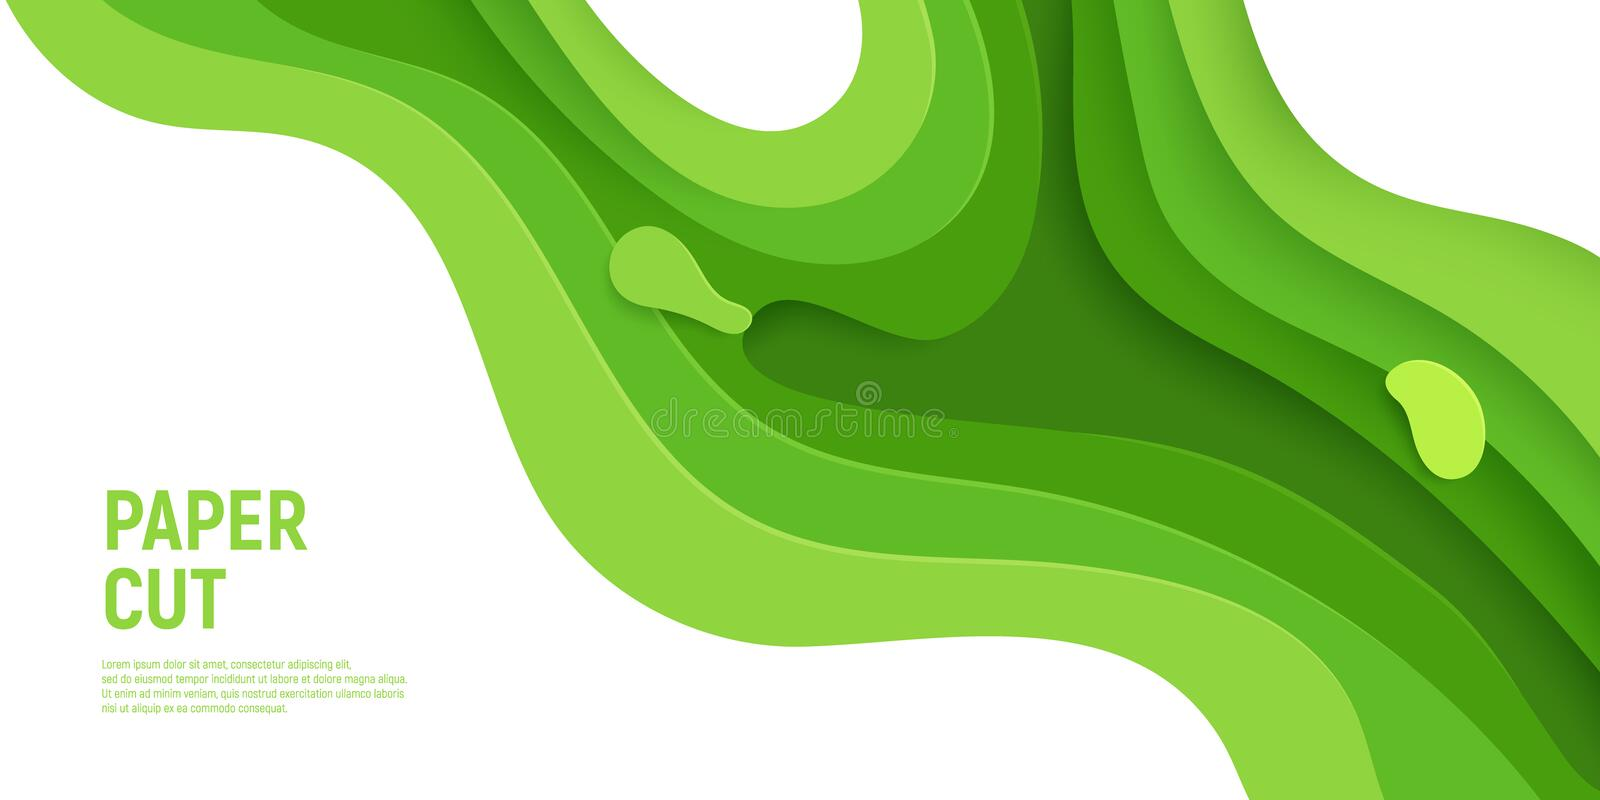 Green paper cut banner with 3D slime abstract background and green waves layers. Abstract layout design for brochure and stock illustration